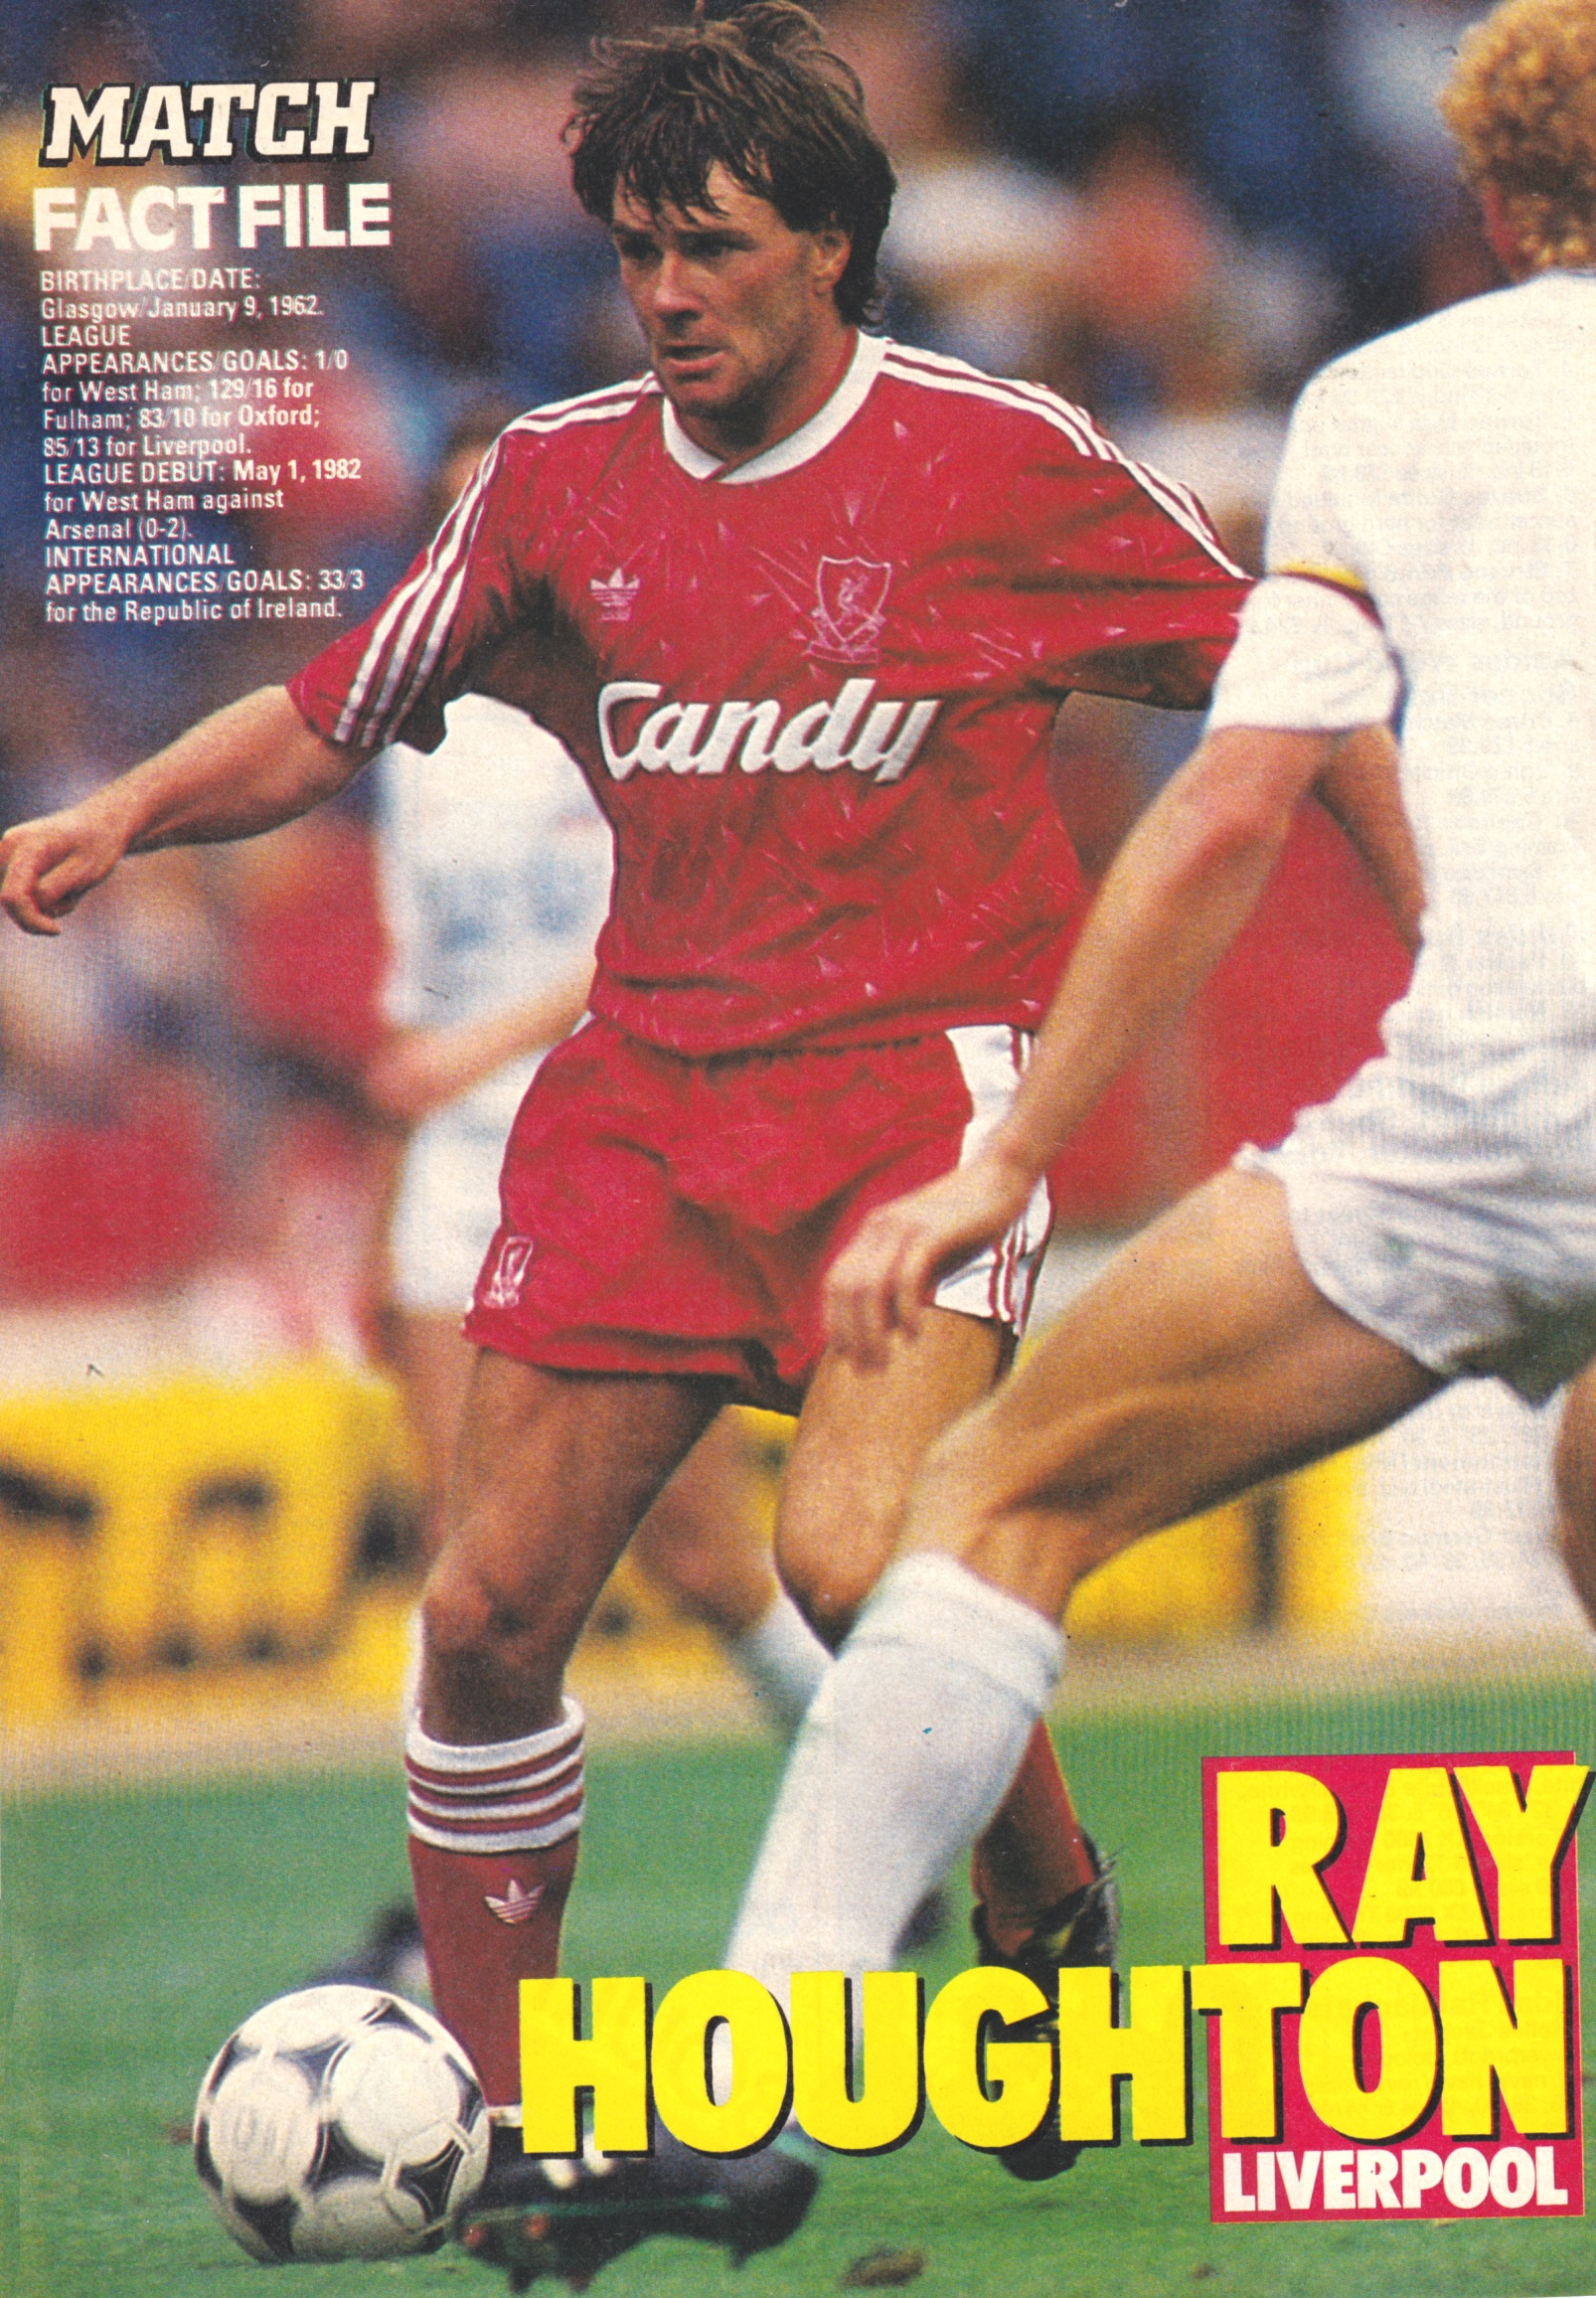 Match factfile - Ray Houghton 1990/91